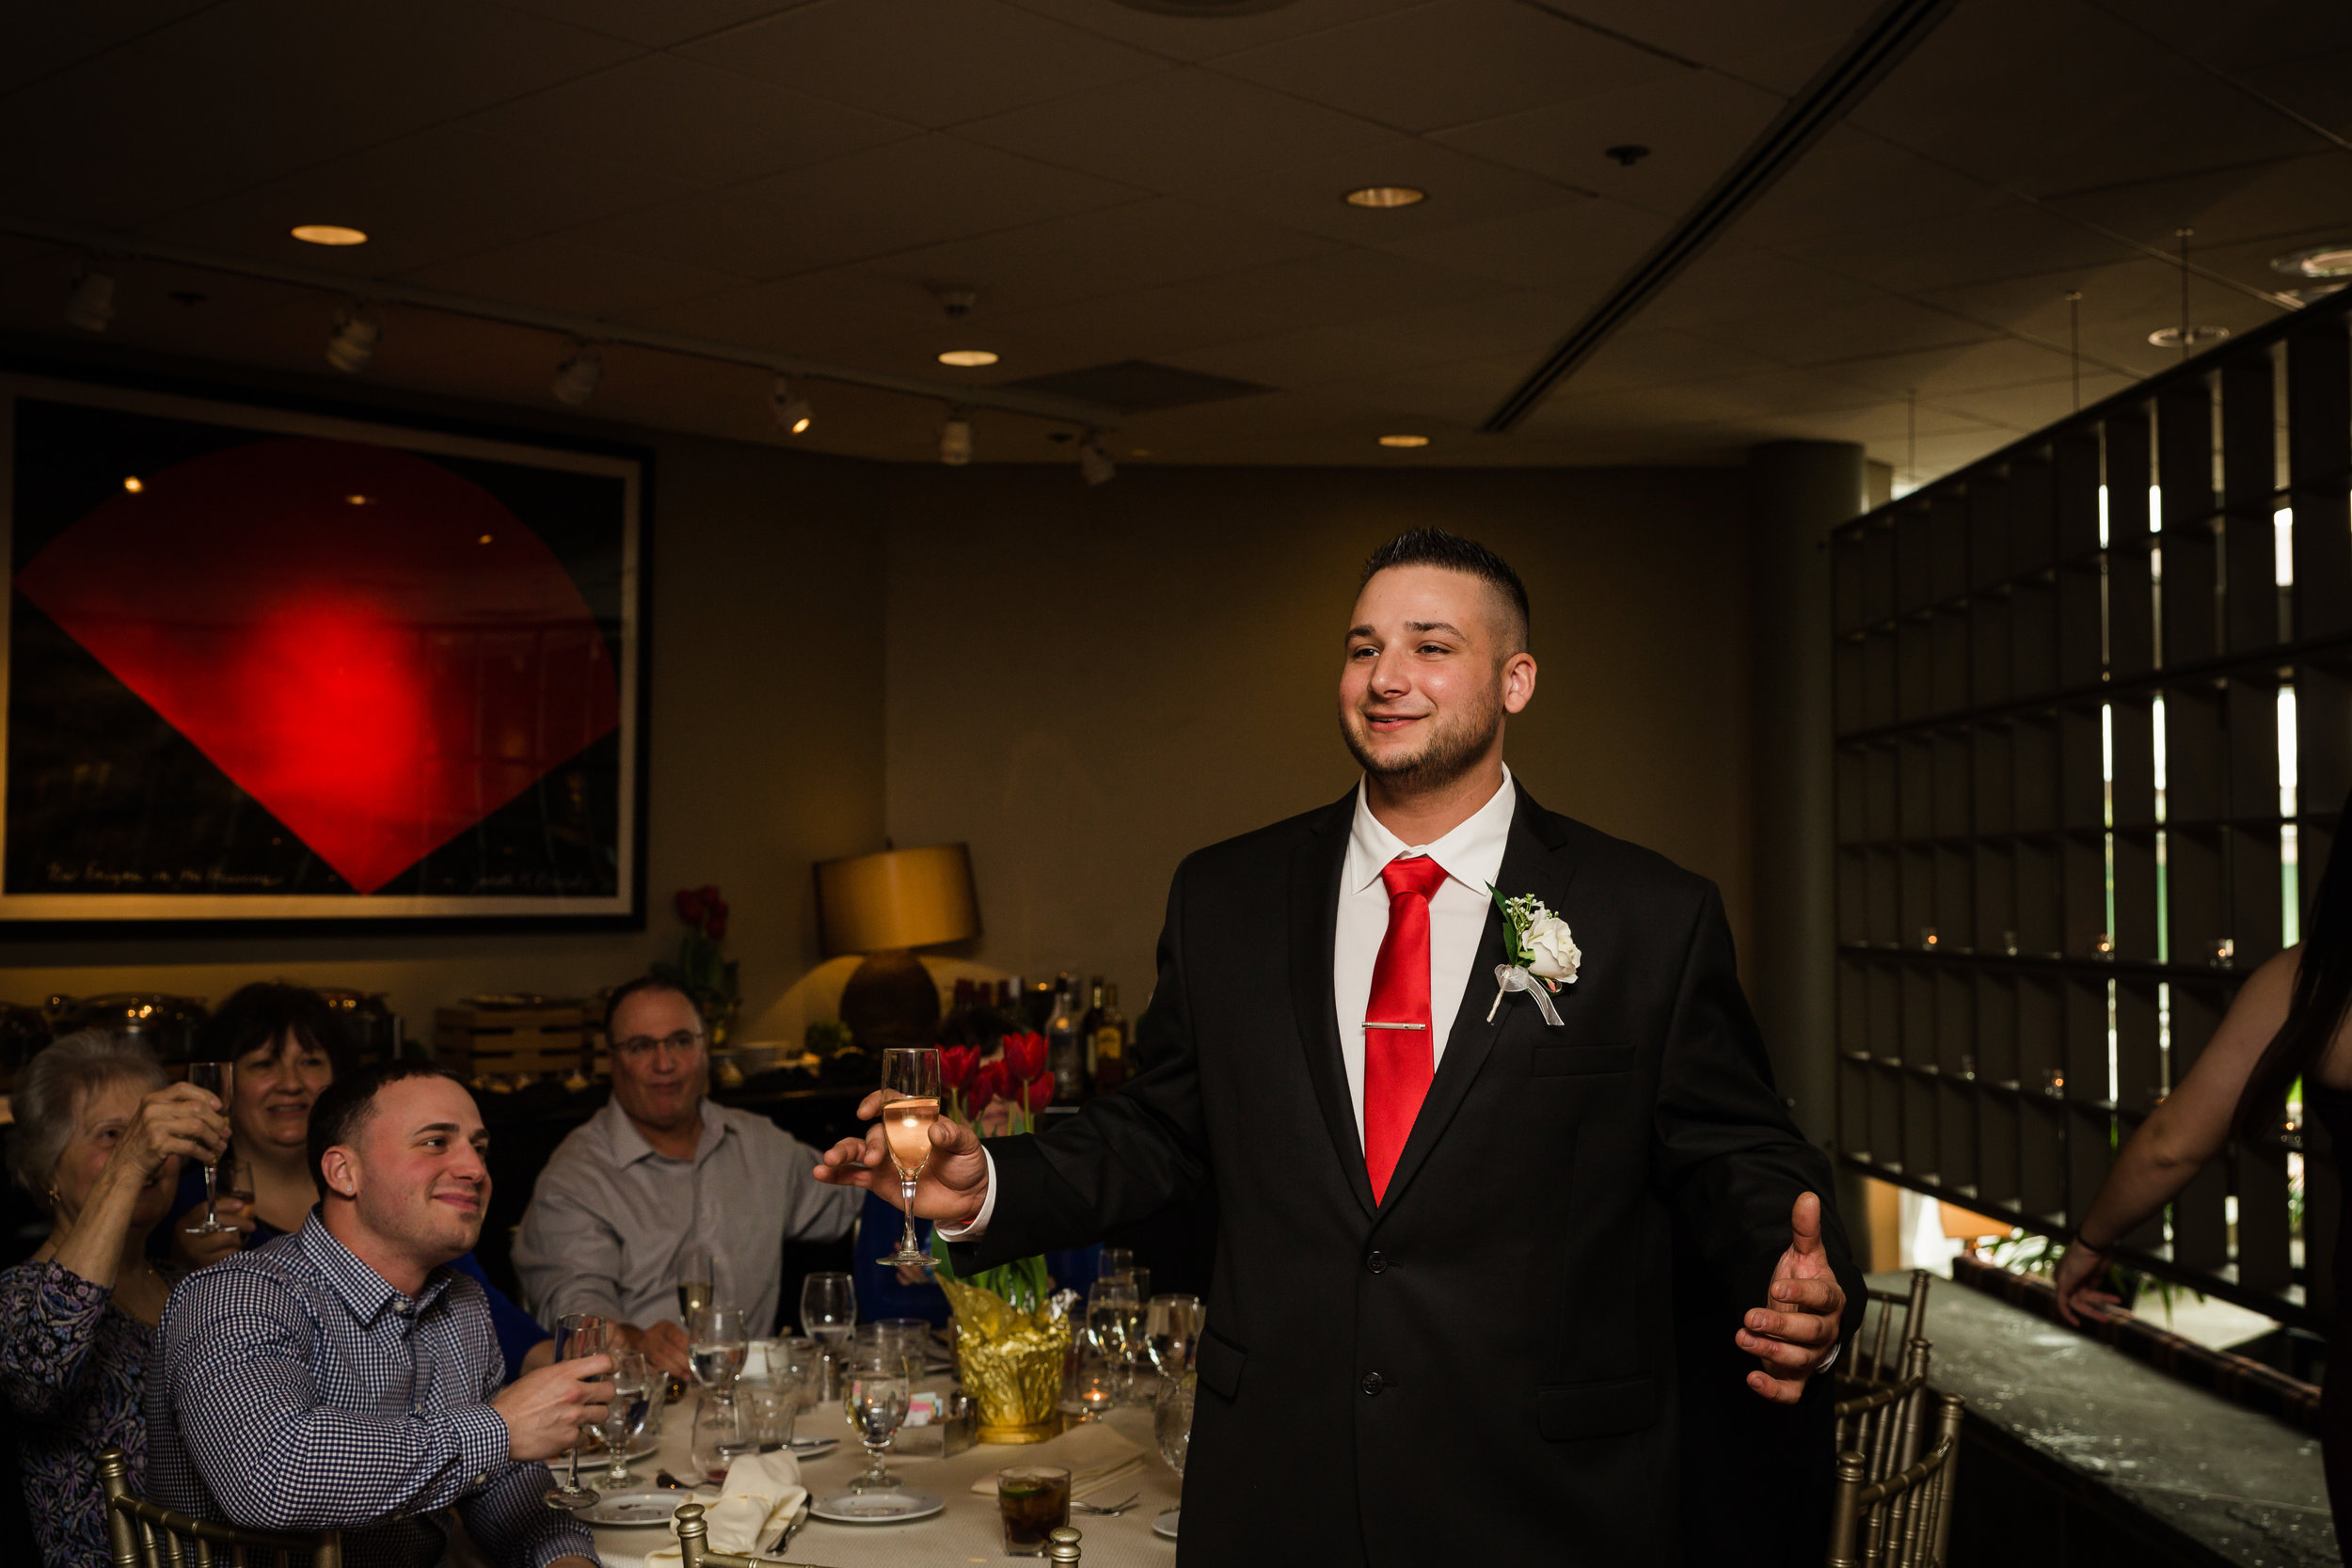 CHAUNCEY HOTEL AND CONFERENCE CENTER WEDDING PHOTOGRAPHY-81.jpg